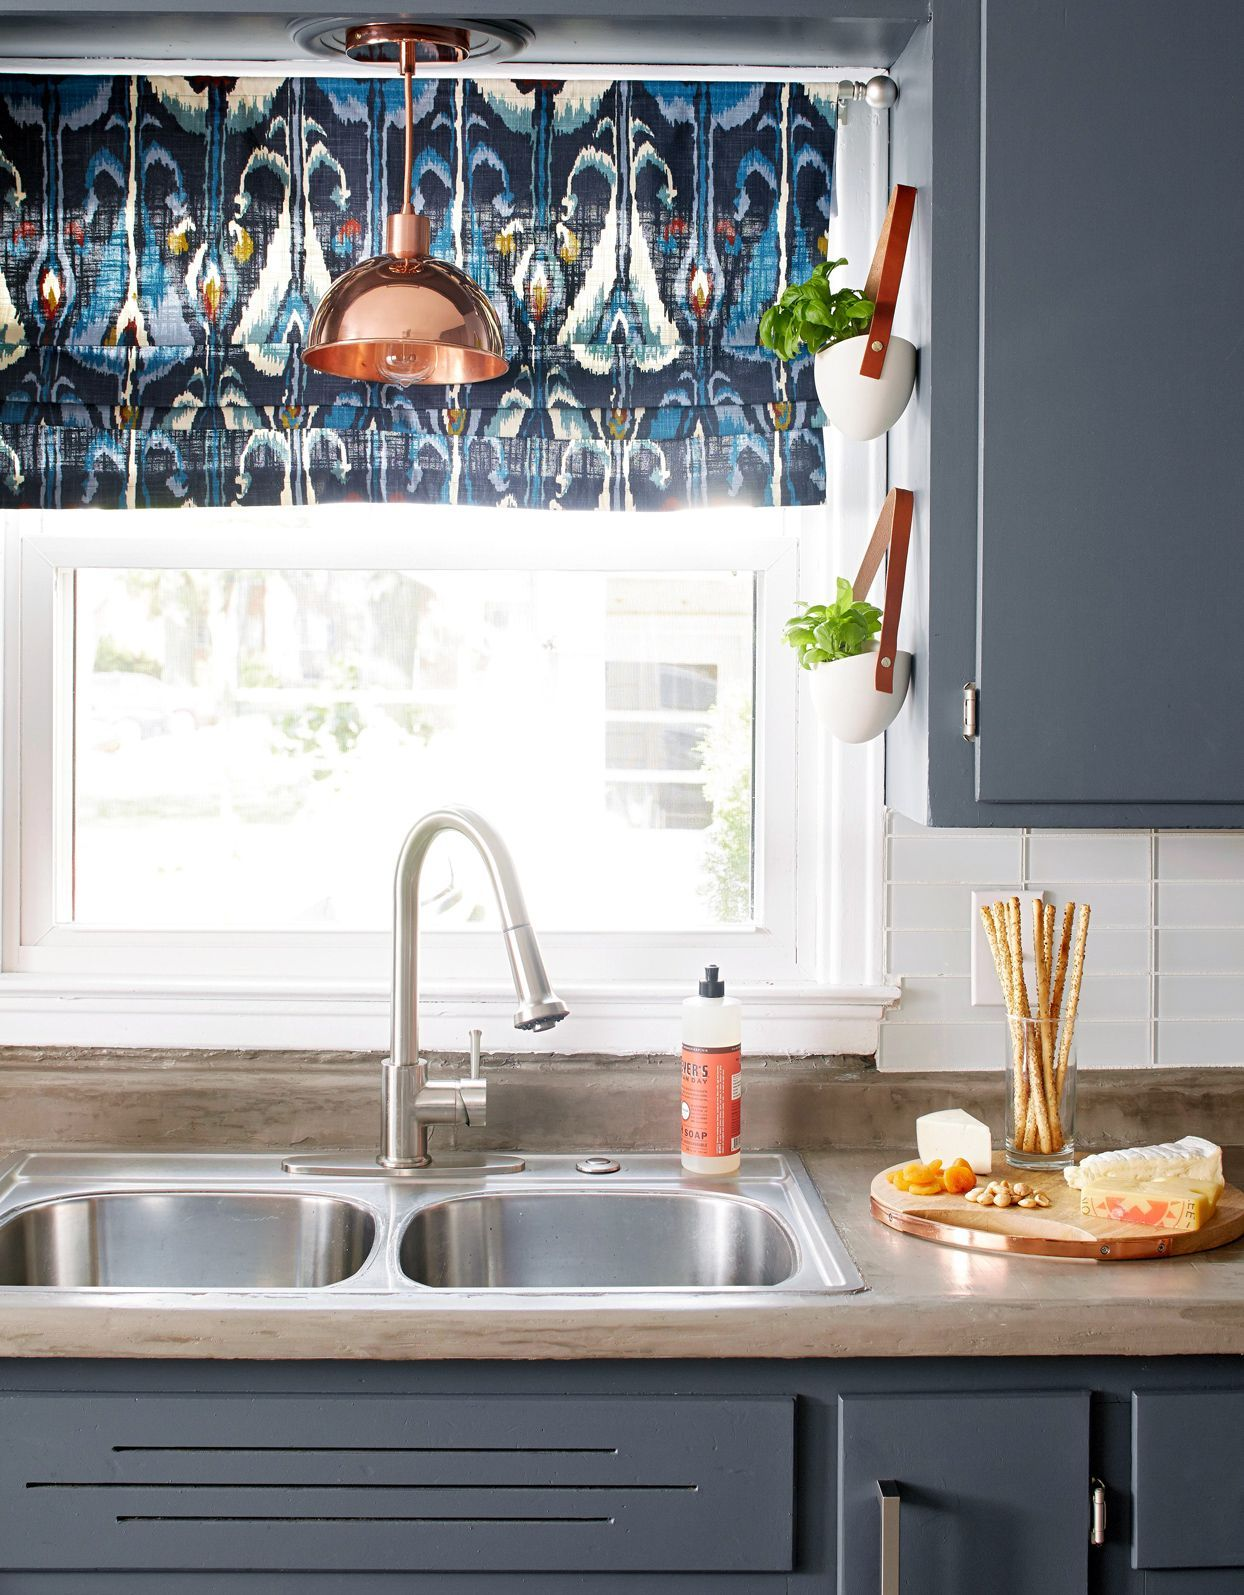 The Easiest Way To Clean Kitchen Cabinets Including Those Tough Grease Stains In 2020 Laminate Cabinets Clean Kitchen Cabinets Painting Laminate Cabinets